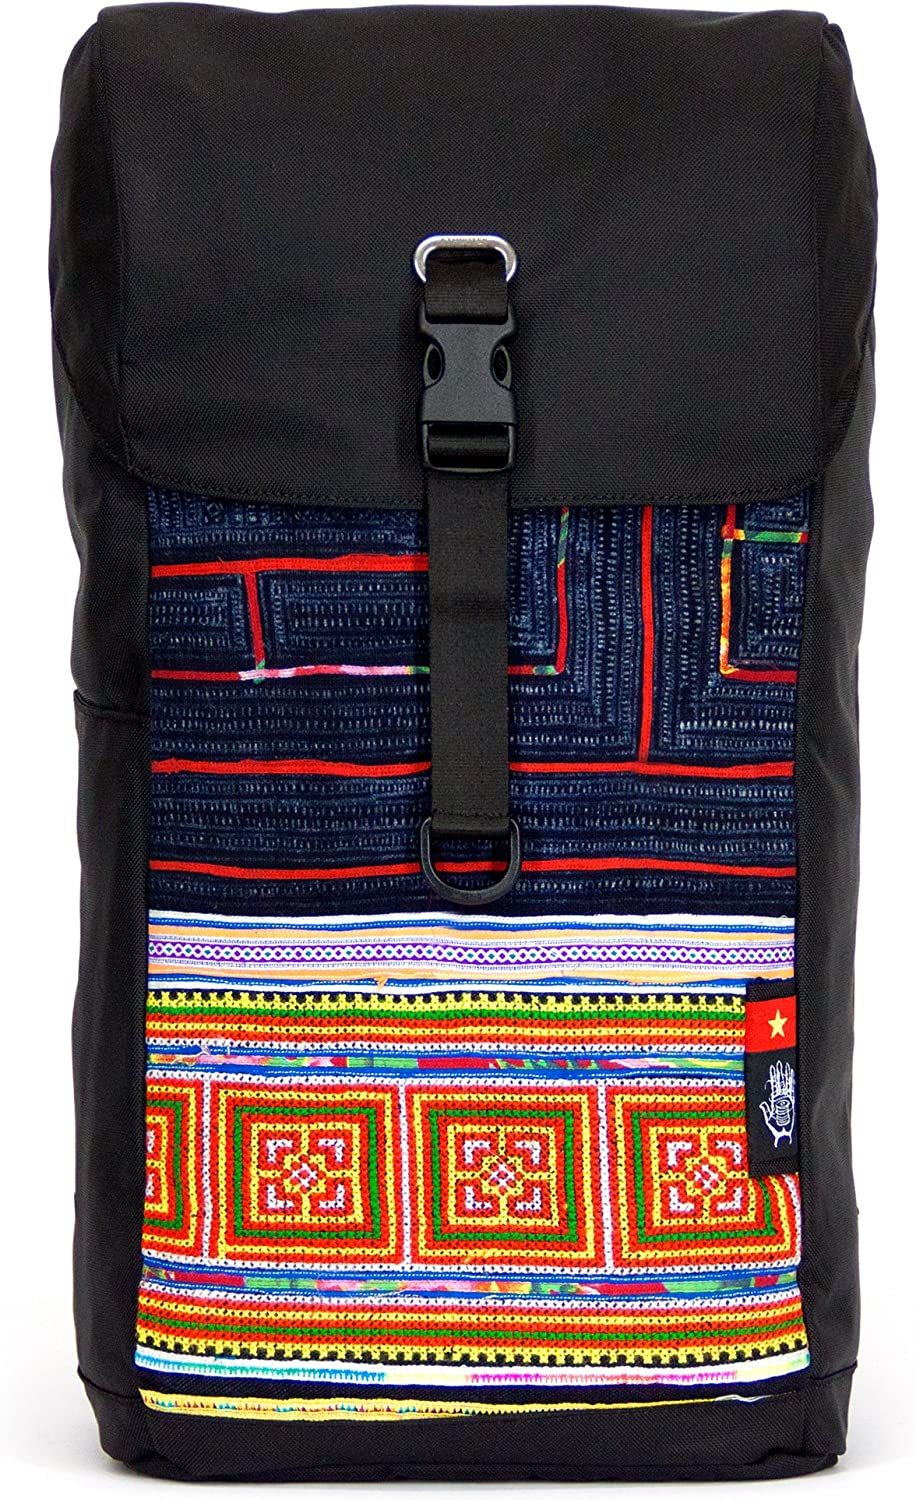 Setia Pack by Ethnotek with outside panel handloomed by traditional craftspeople (Vietnam 6)